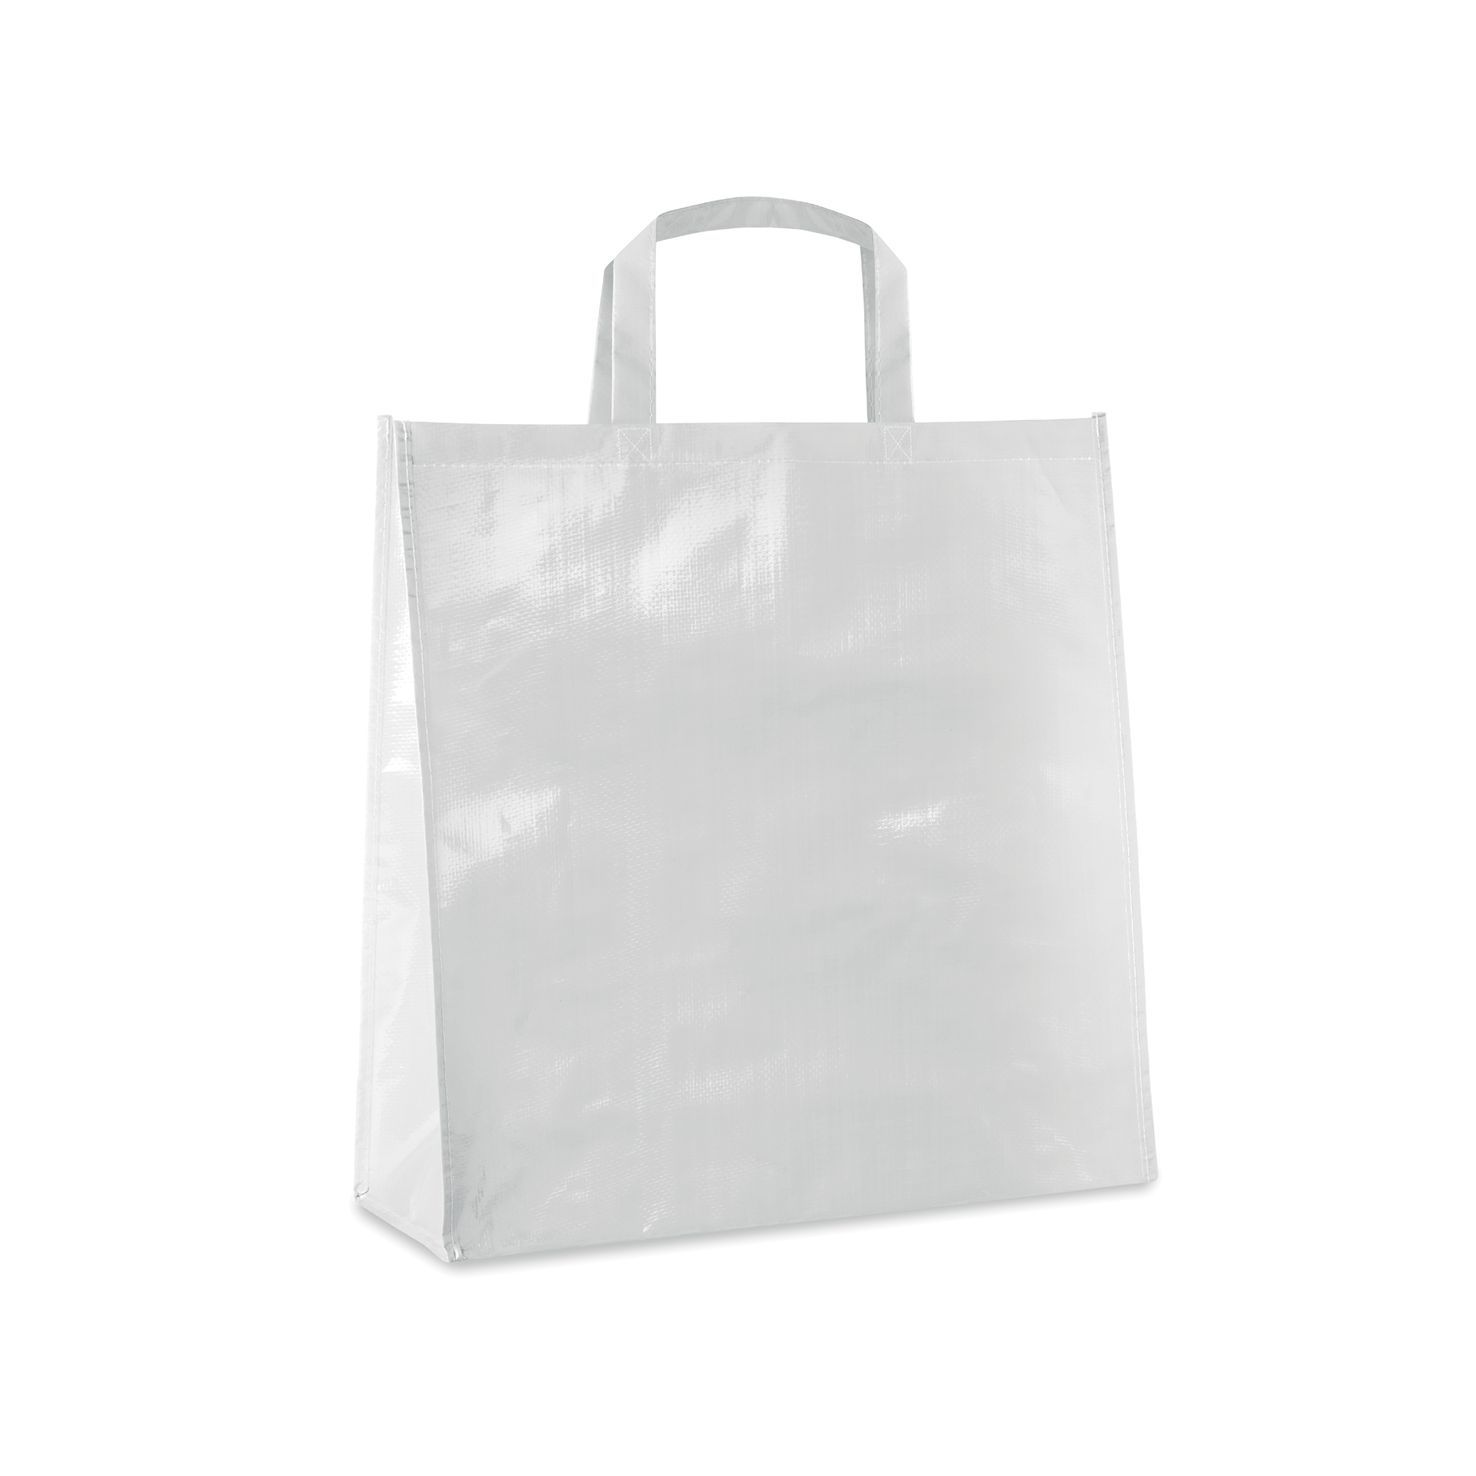 Witte Shopper | PP geweven | Gelamineerd | 120 grams